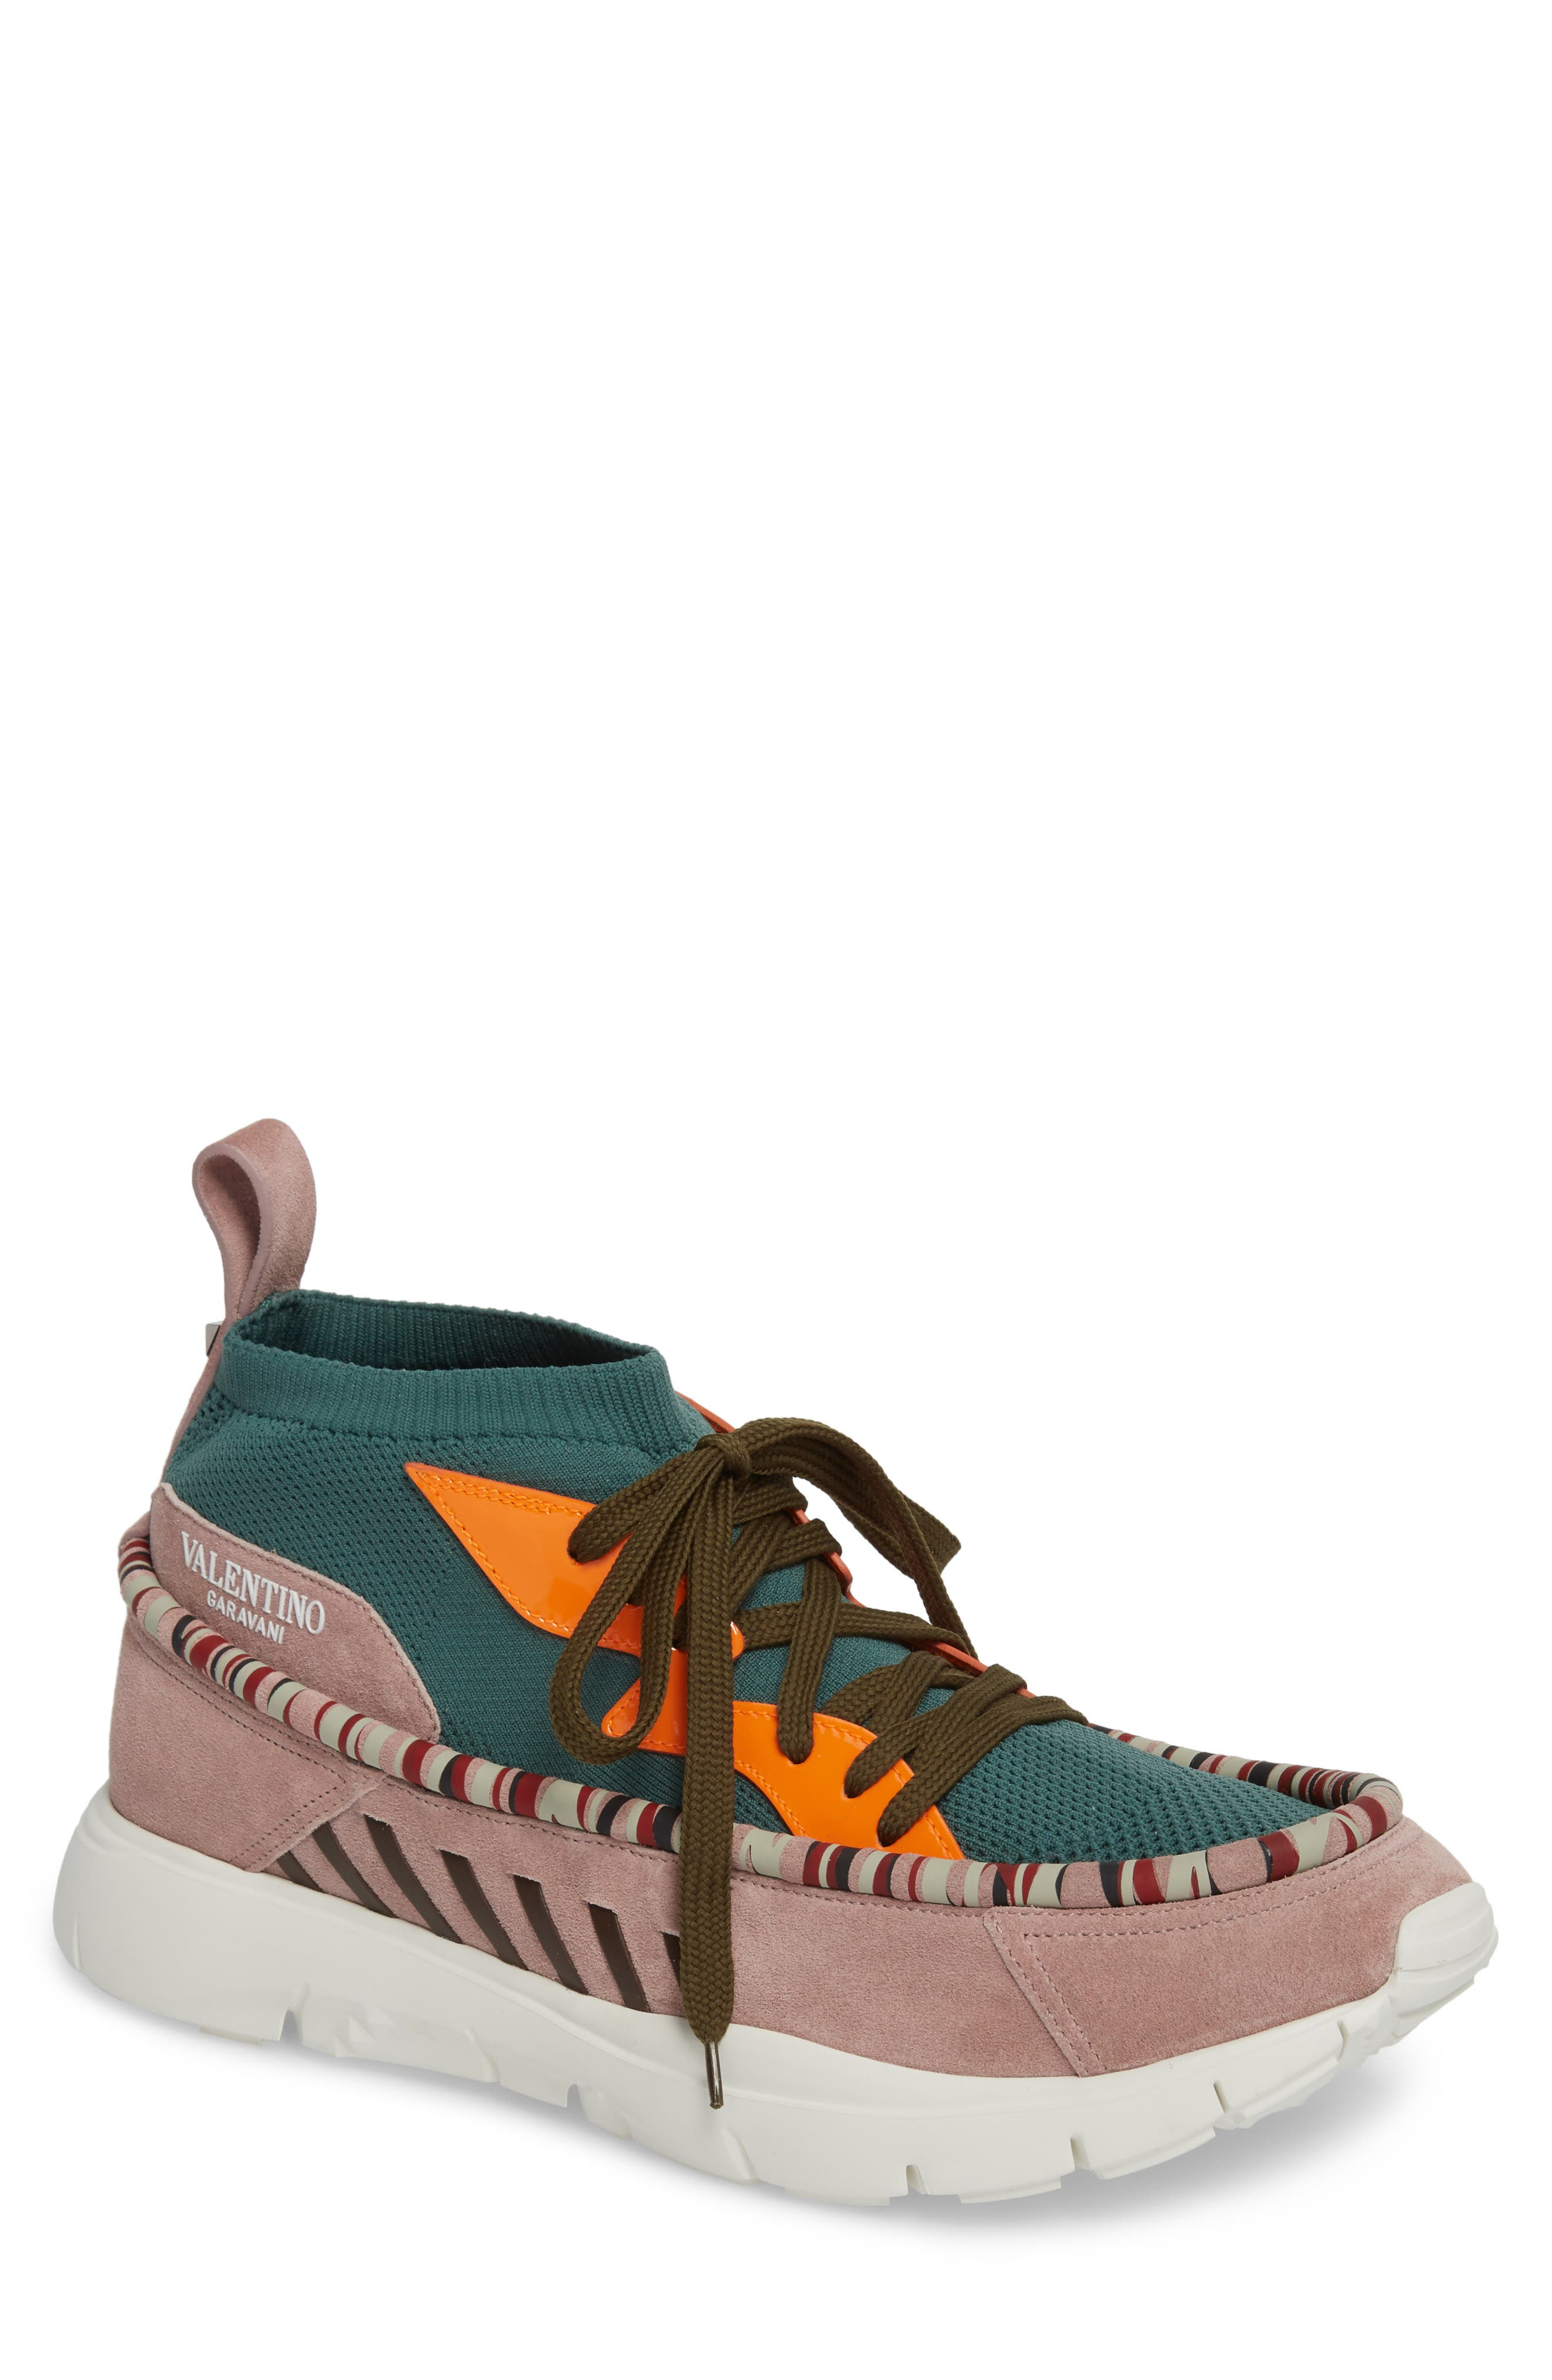 Heroes Sneaker,                         Main,                         color, 666